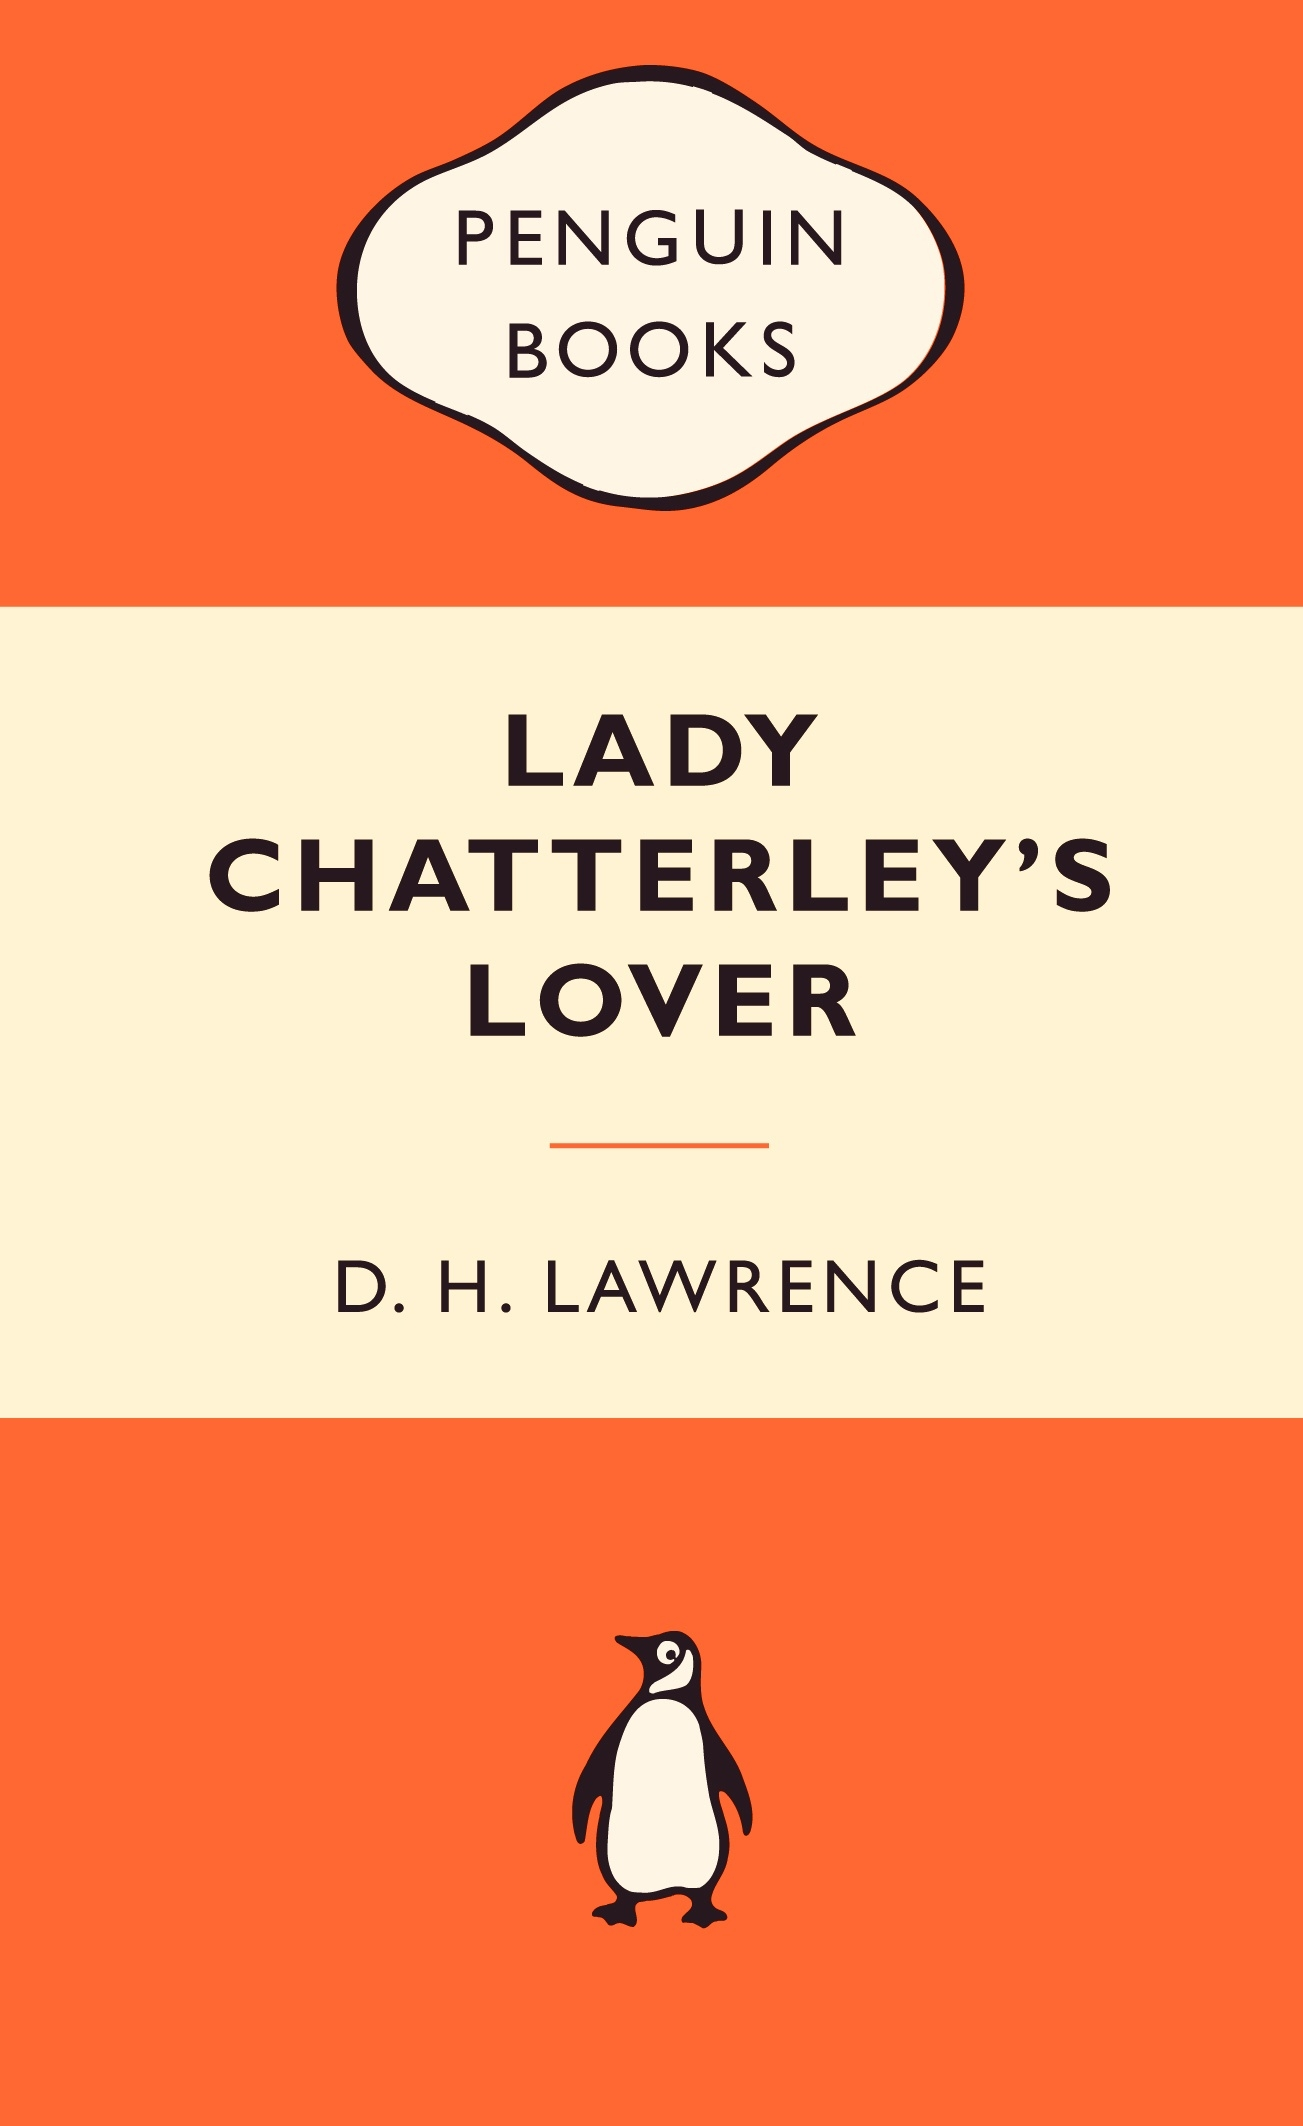 lady chatterleys lover essays Characters in dh lawrence's lady chatterley's lover struggle to escape the inescapable confines of money, class, and power there was once a time when nature, not industry, was the driving force of human life those days are long gone and irretrievable, and as such, lawrence's attempt to.